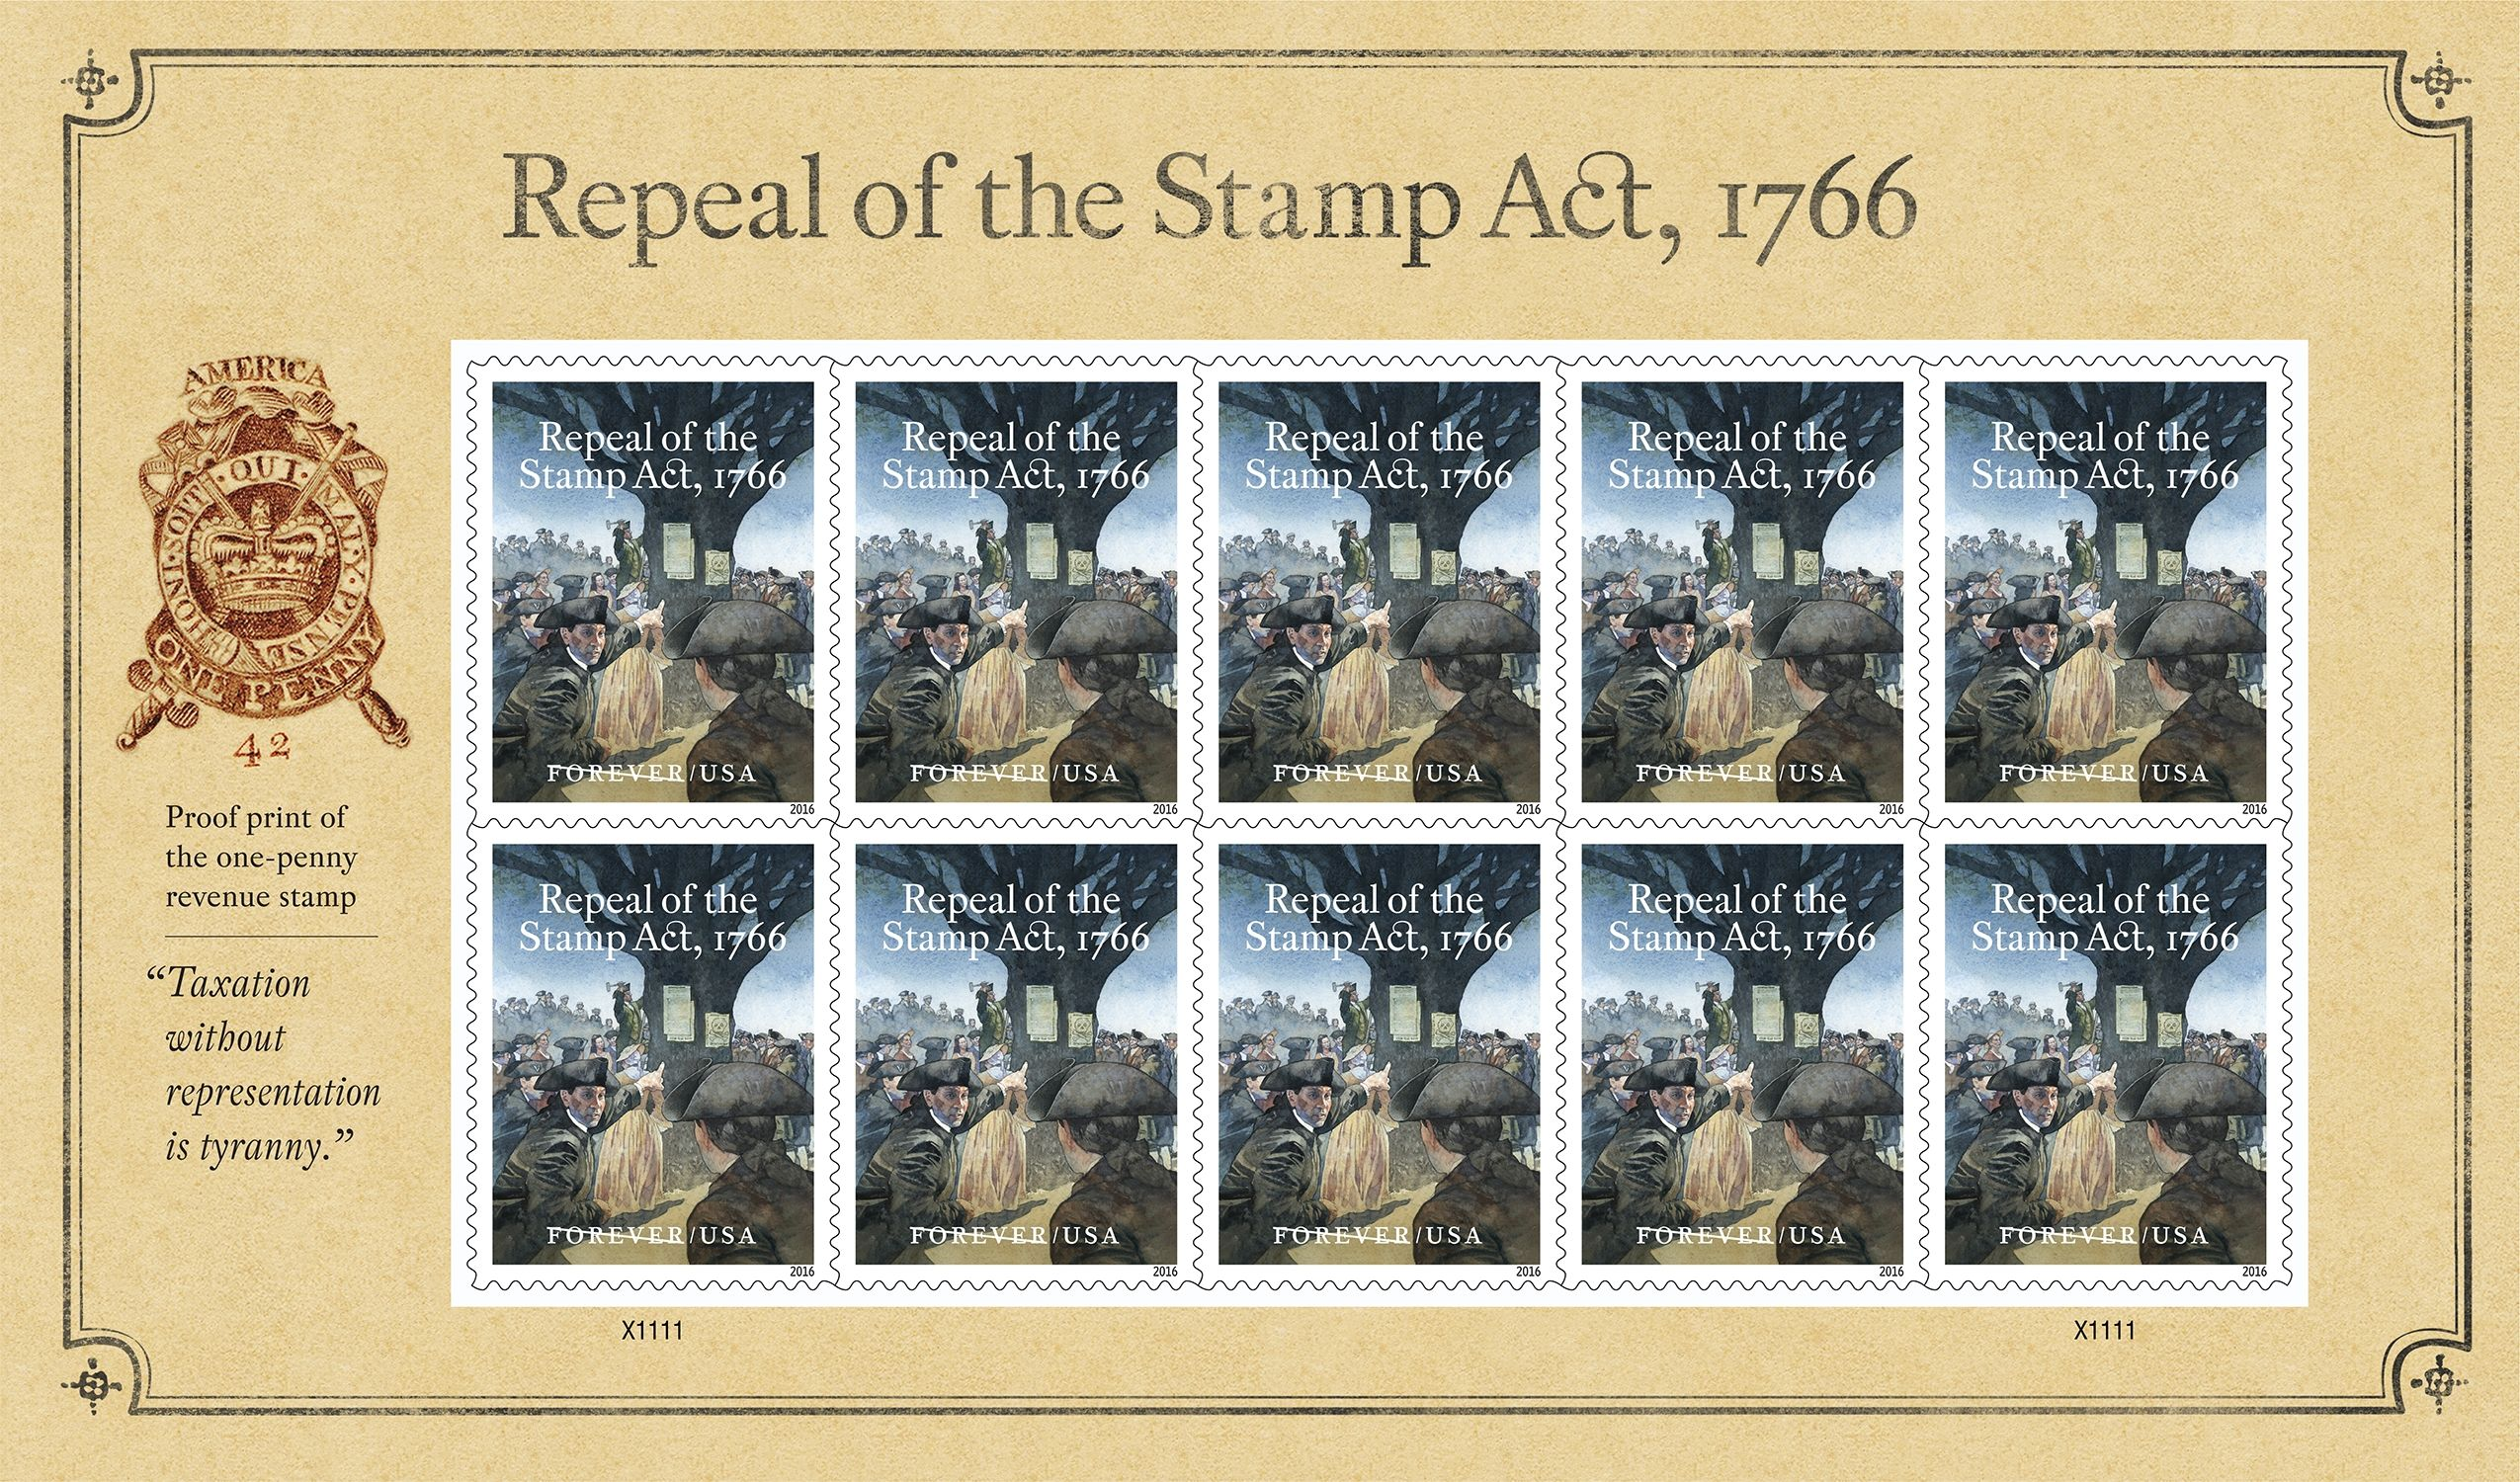 Where to buy stamps - Explore Acts 10 Buy Stamps And More